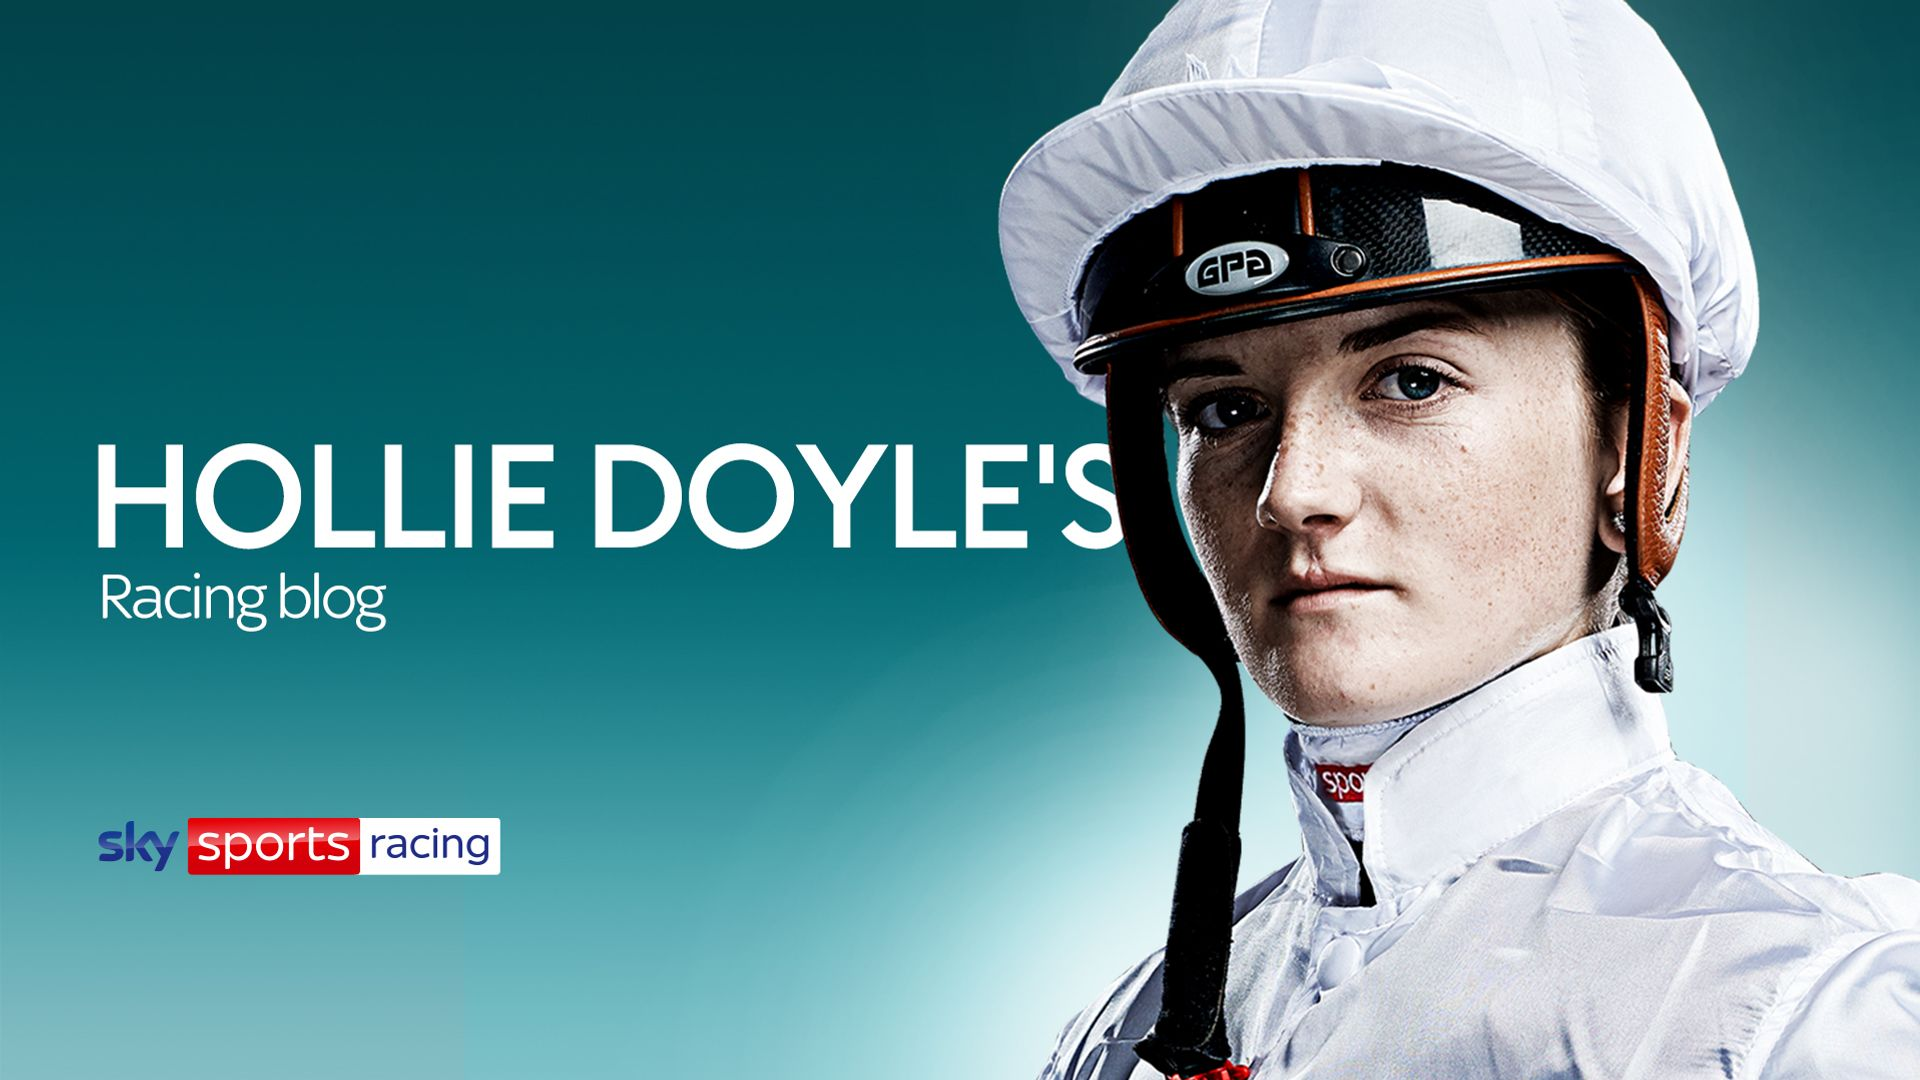 Hollie Doyle blog: A Glorious day to ride second Group One